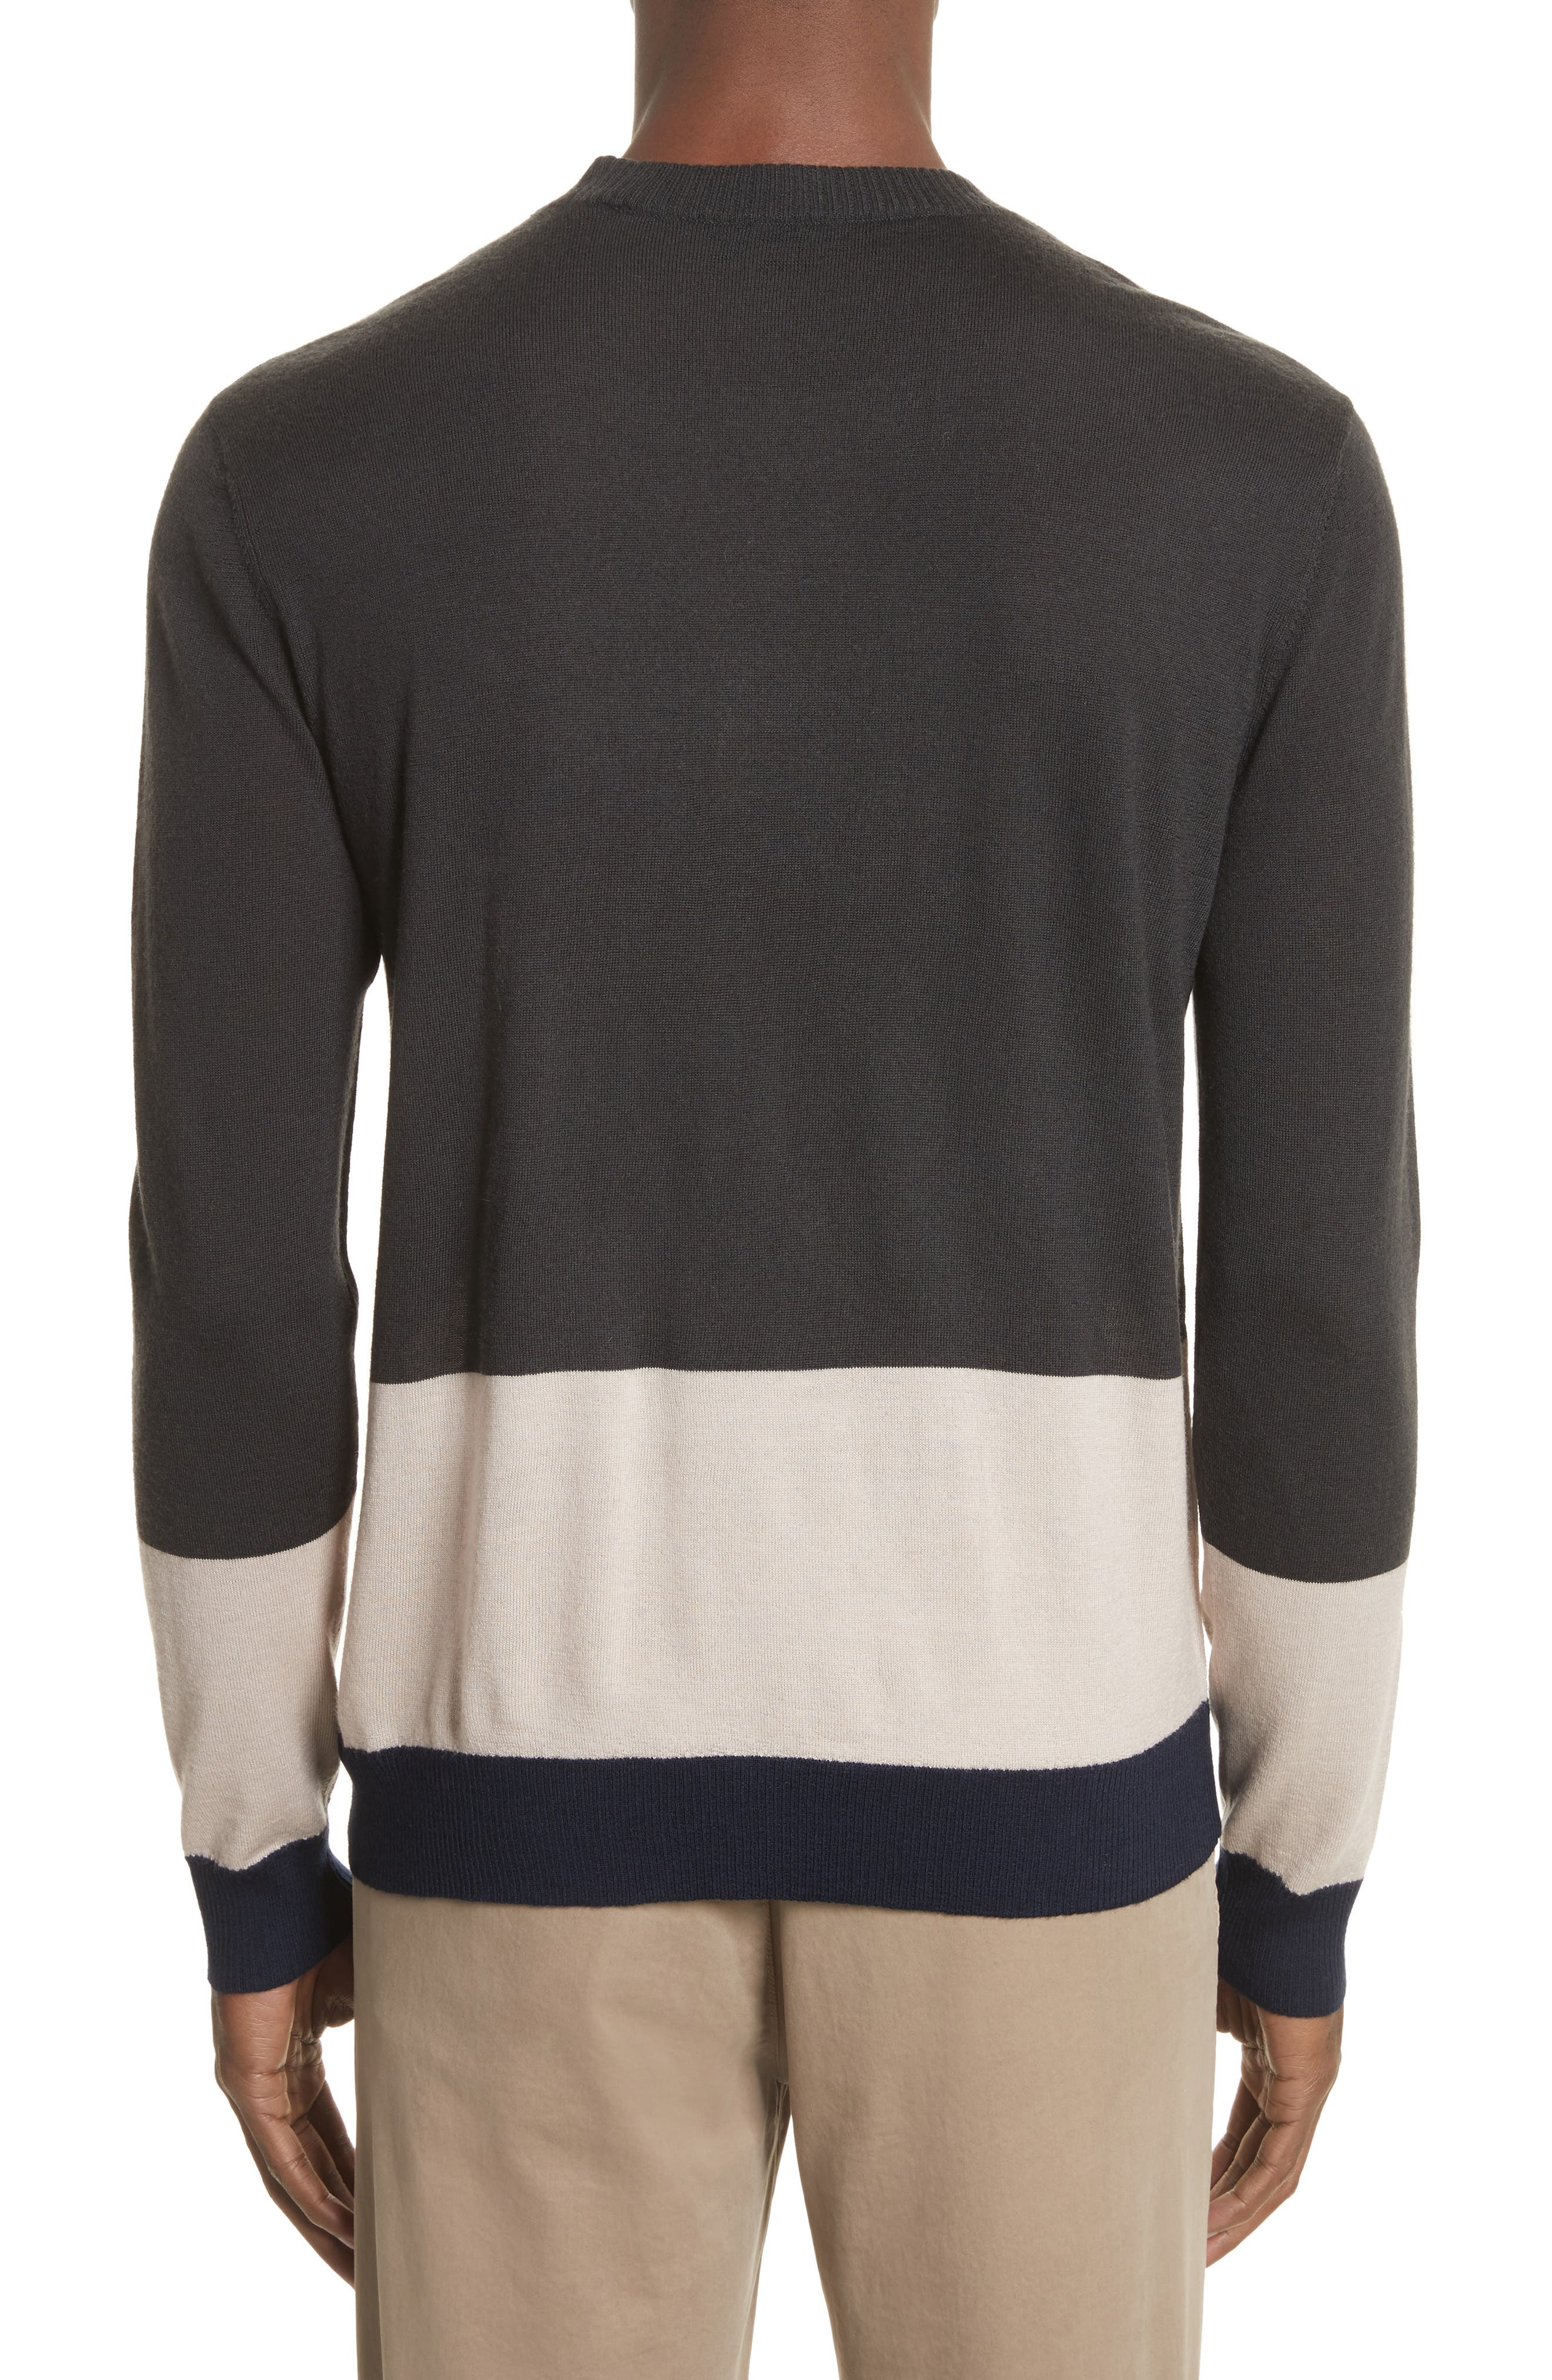 Colorblock Merino Wool Sweater,                             Alternate thumbnail 2, color,                             Beige/ Slate/ Midnight